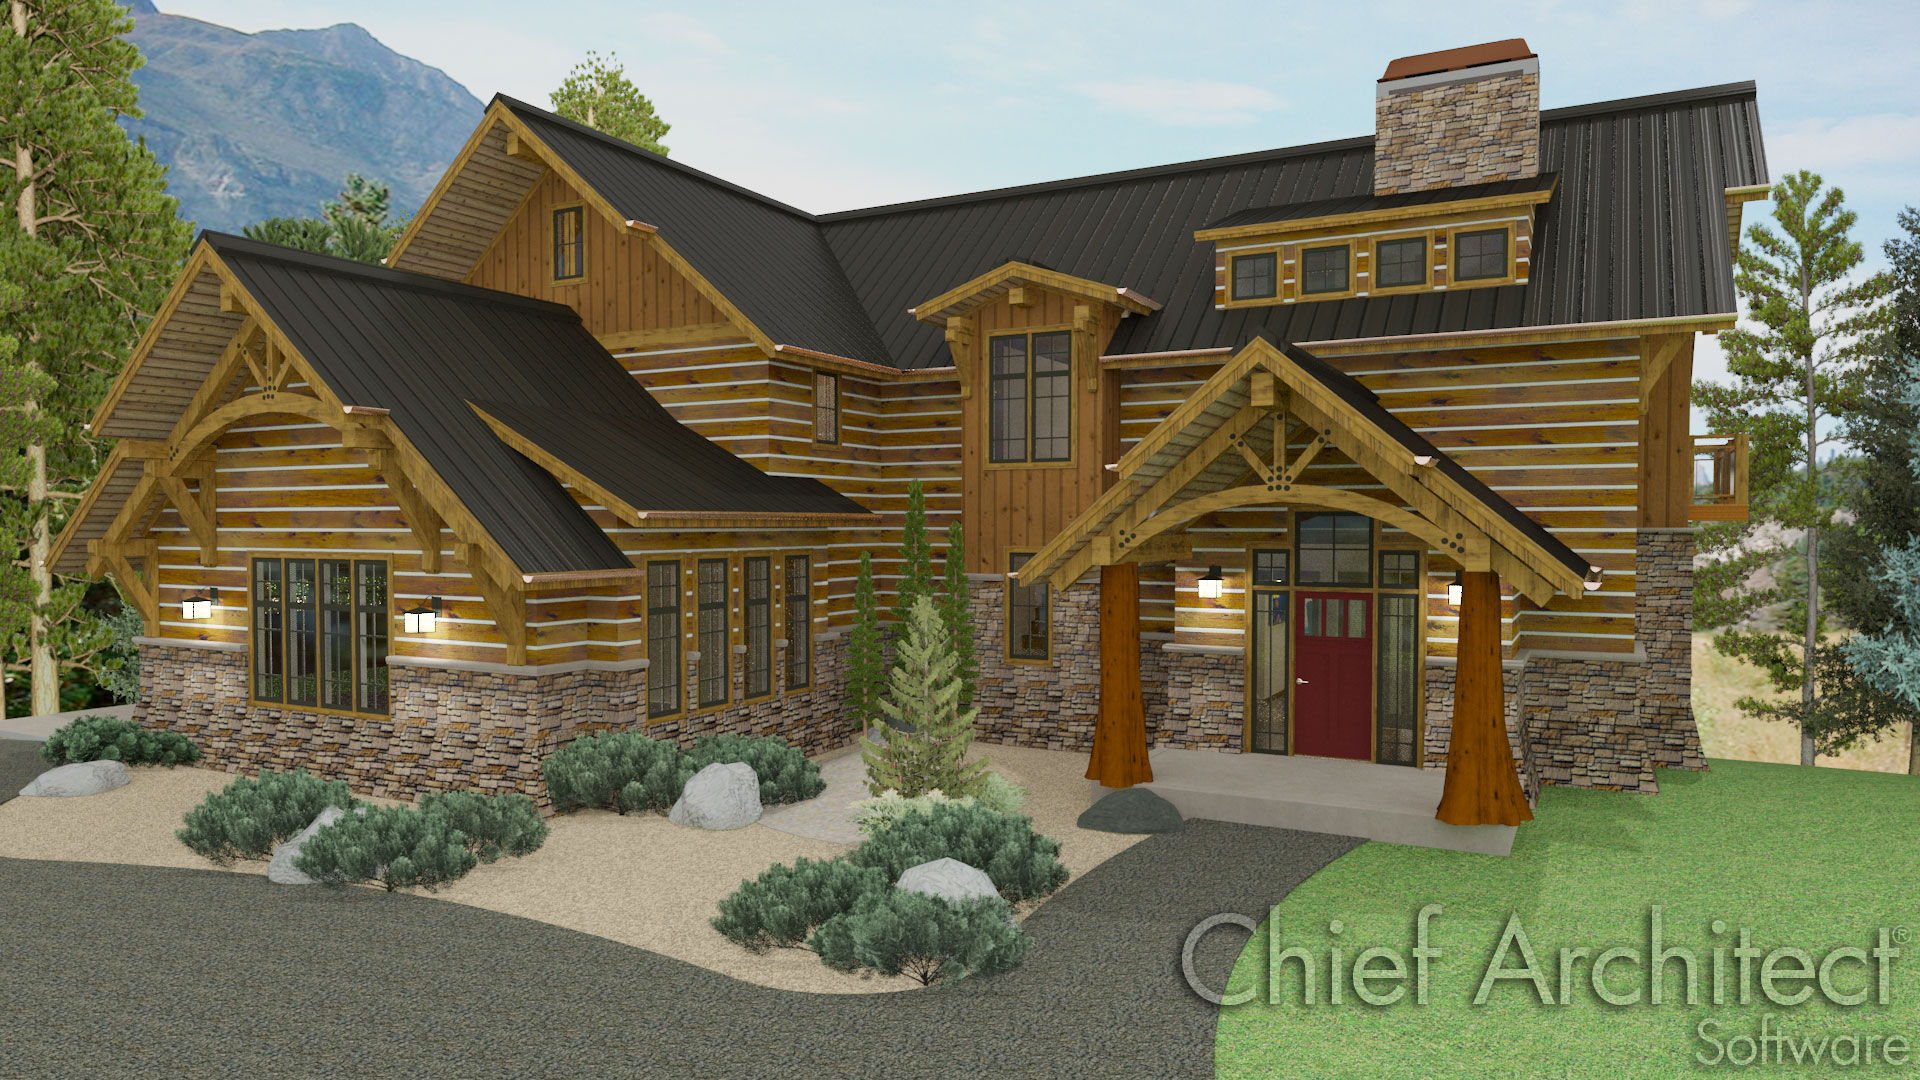 ... On Timber Frame Construction In The Form Of A Classic Mountain Home  With Shed Dormer, Prow Roof Overhangs, Custom Trusses, Log Siding With  Chinking, ...